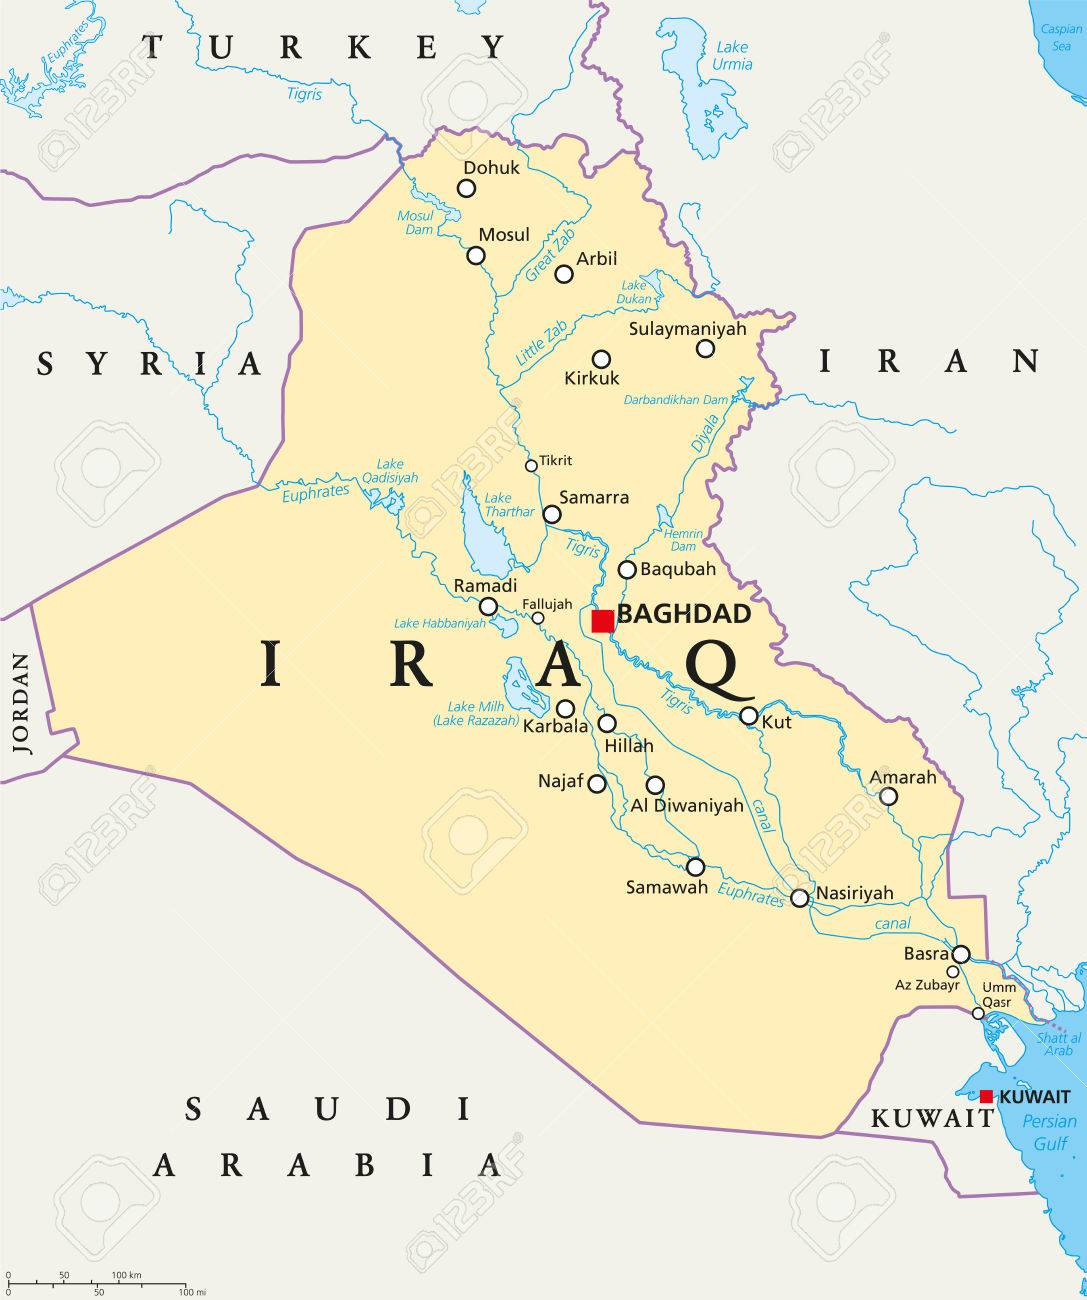 iraq political map with capital baghdad national borders important cities rivers and lakes